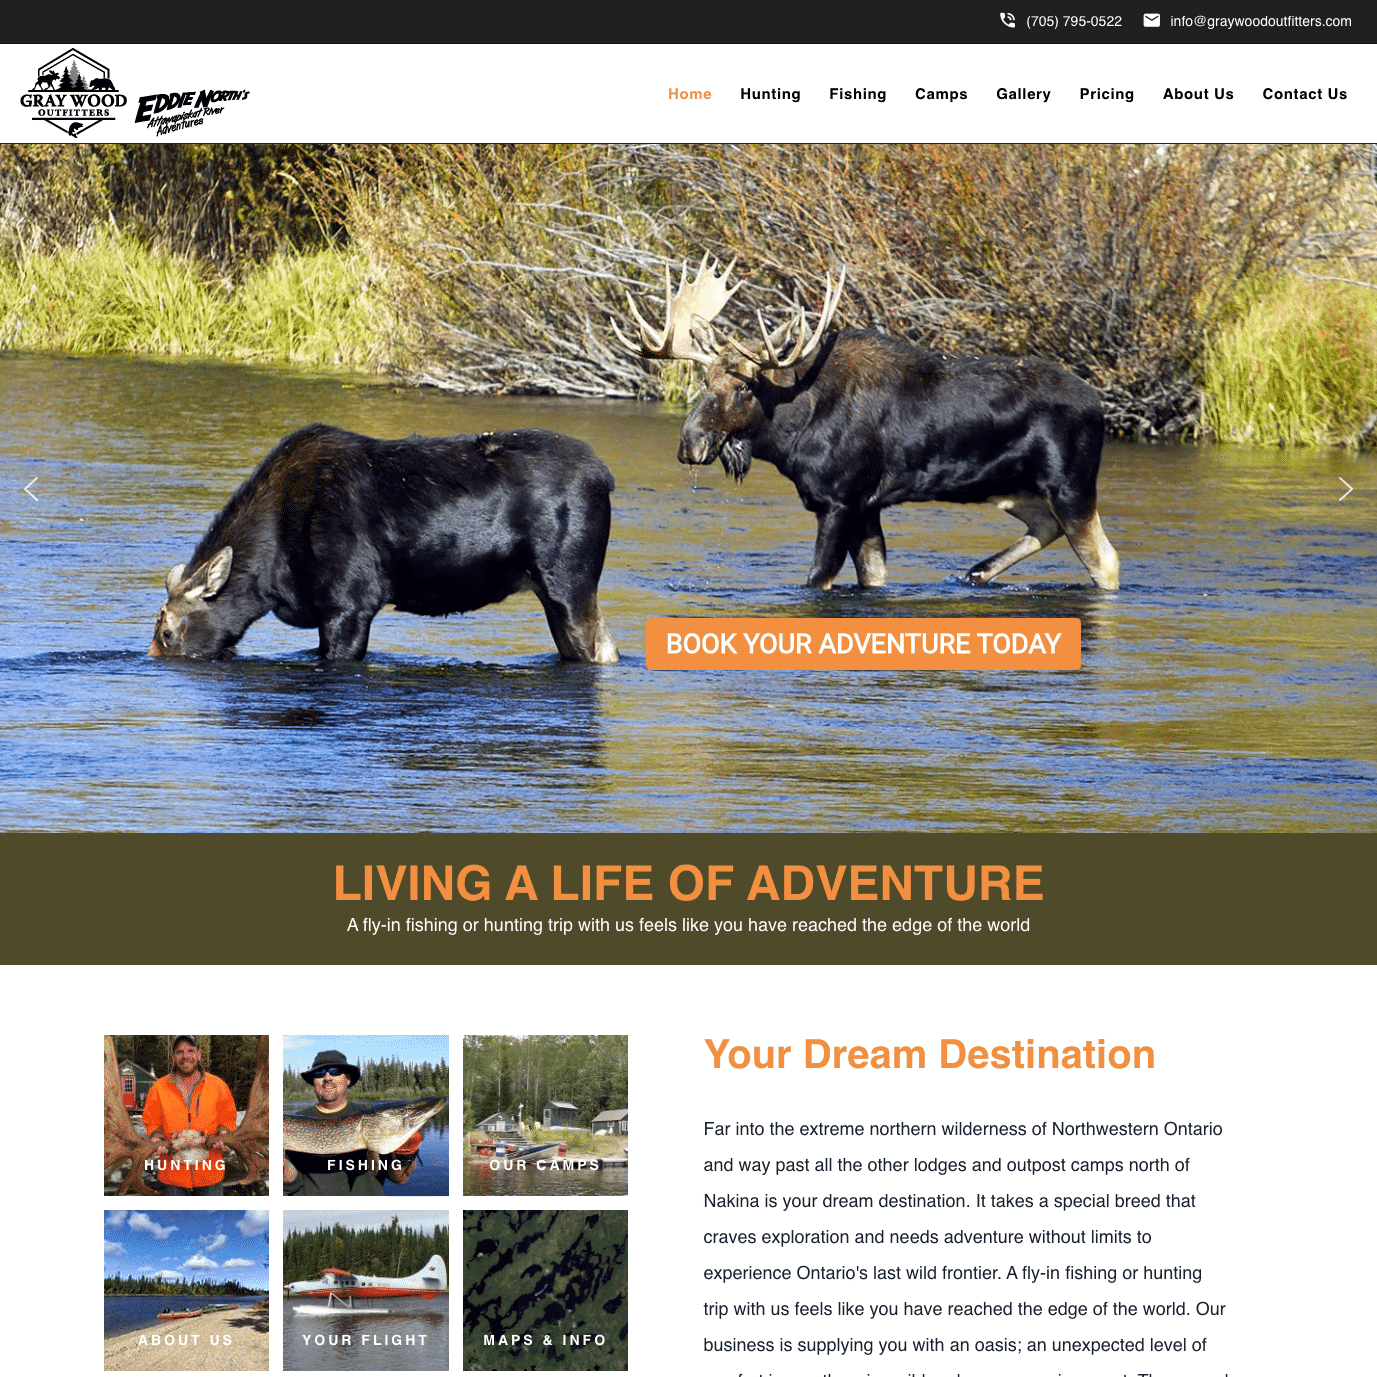 Gray Wood Outfitters Home Page